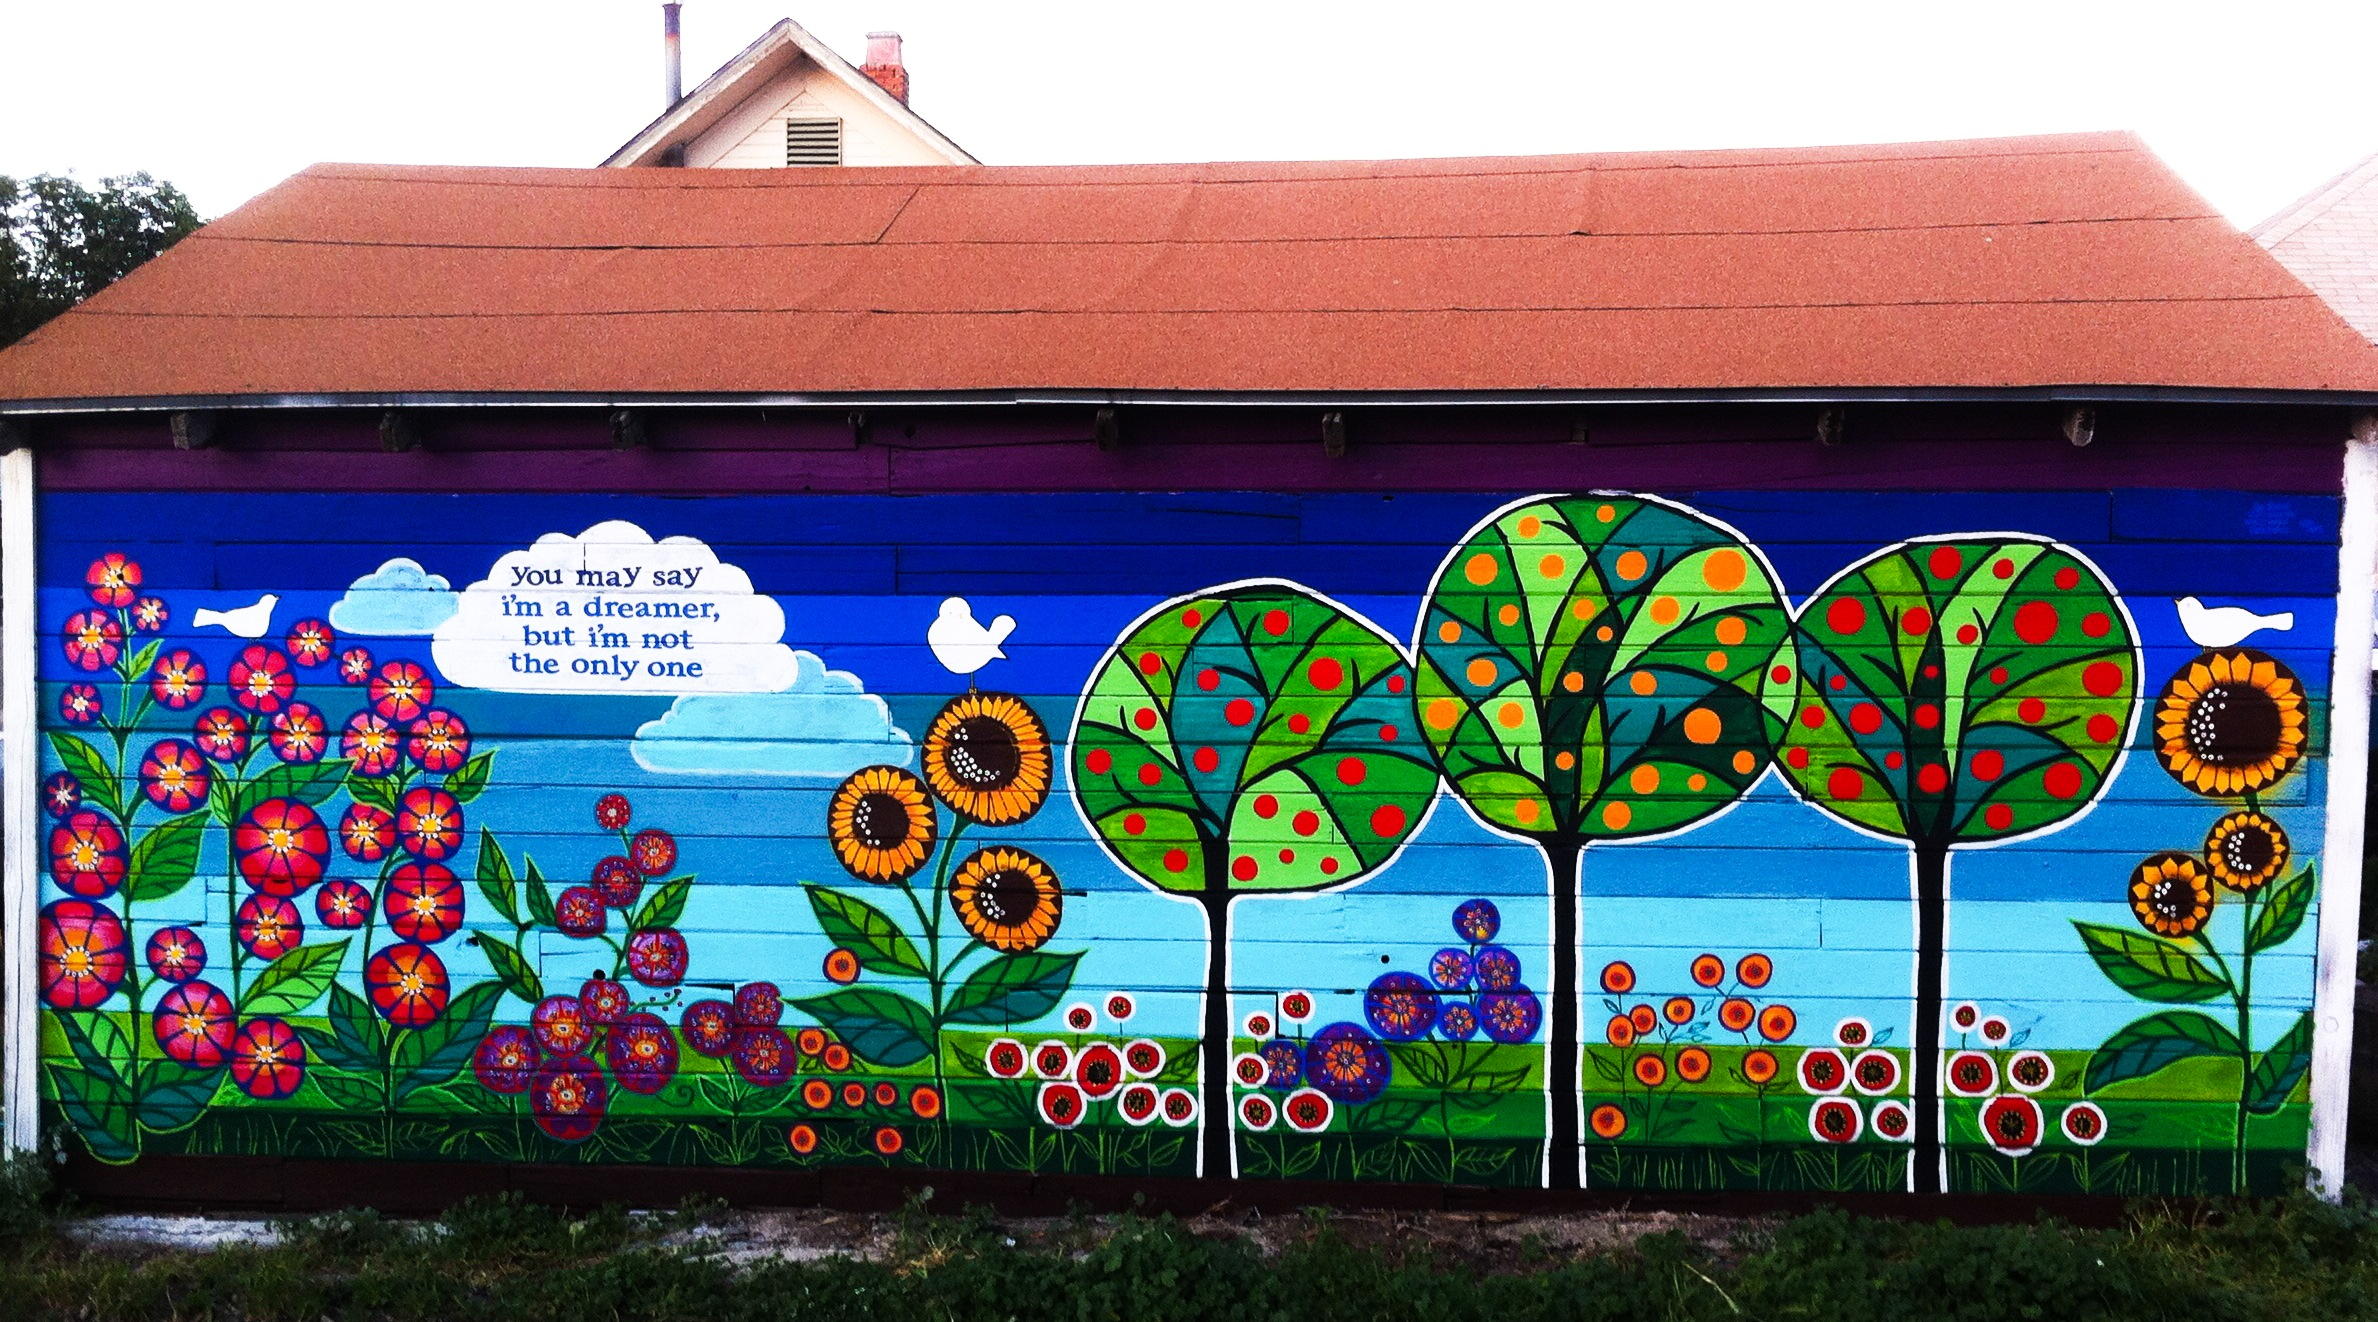 1000 images about community mural urban garden on pinterest for Mural garden